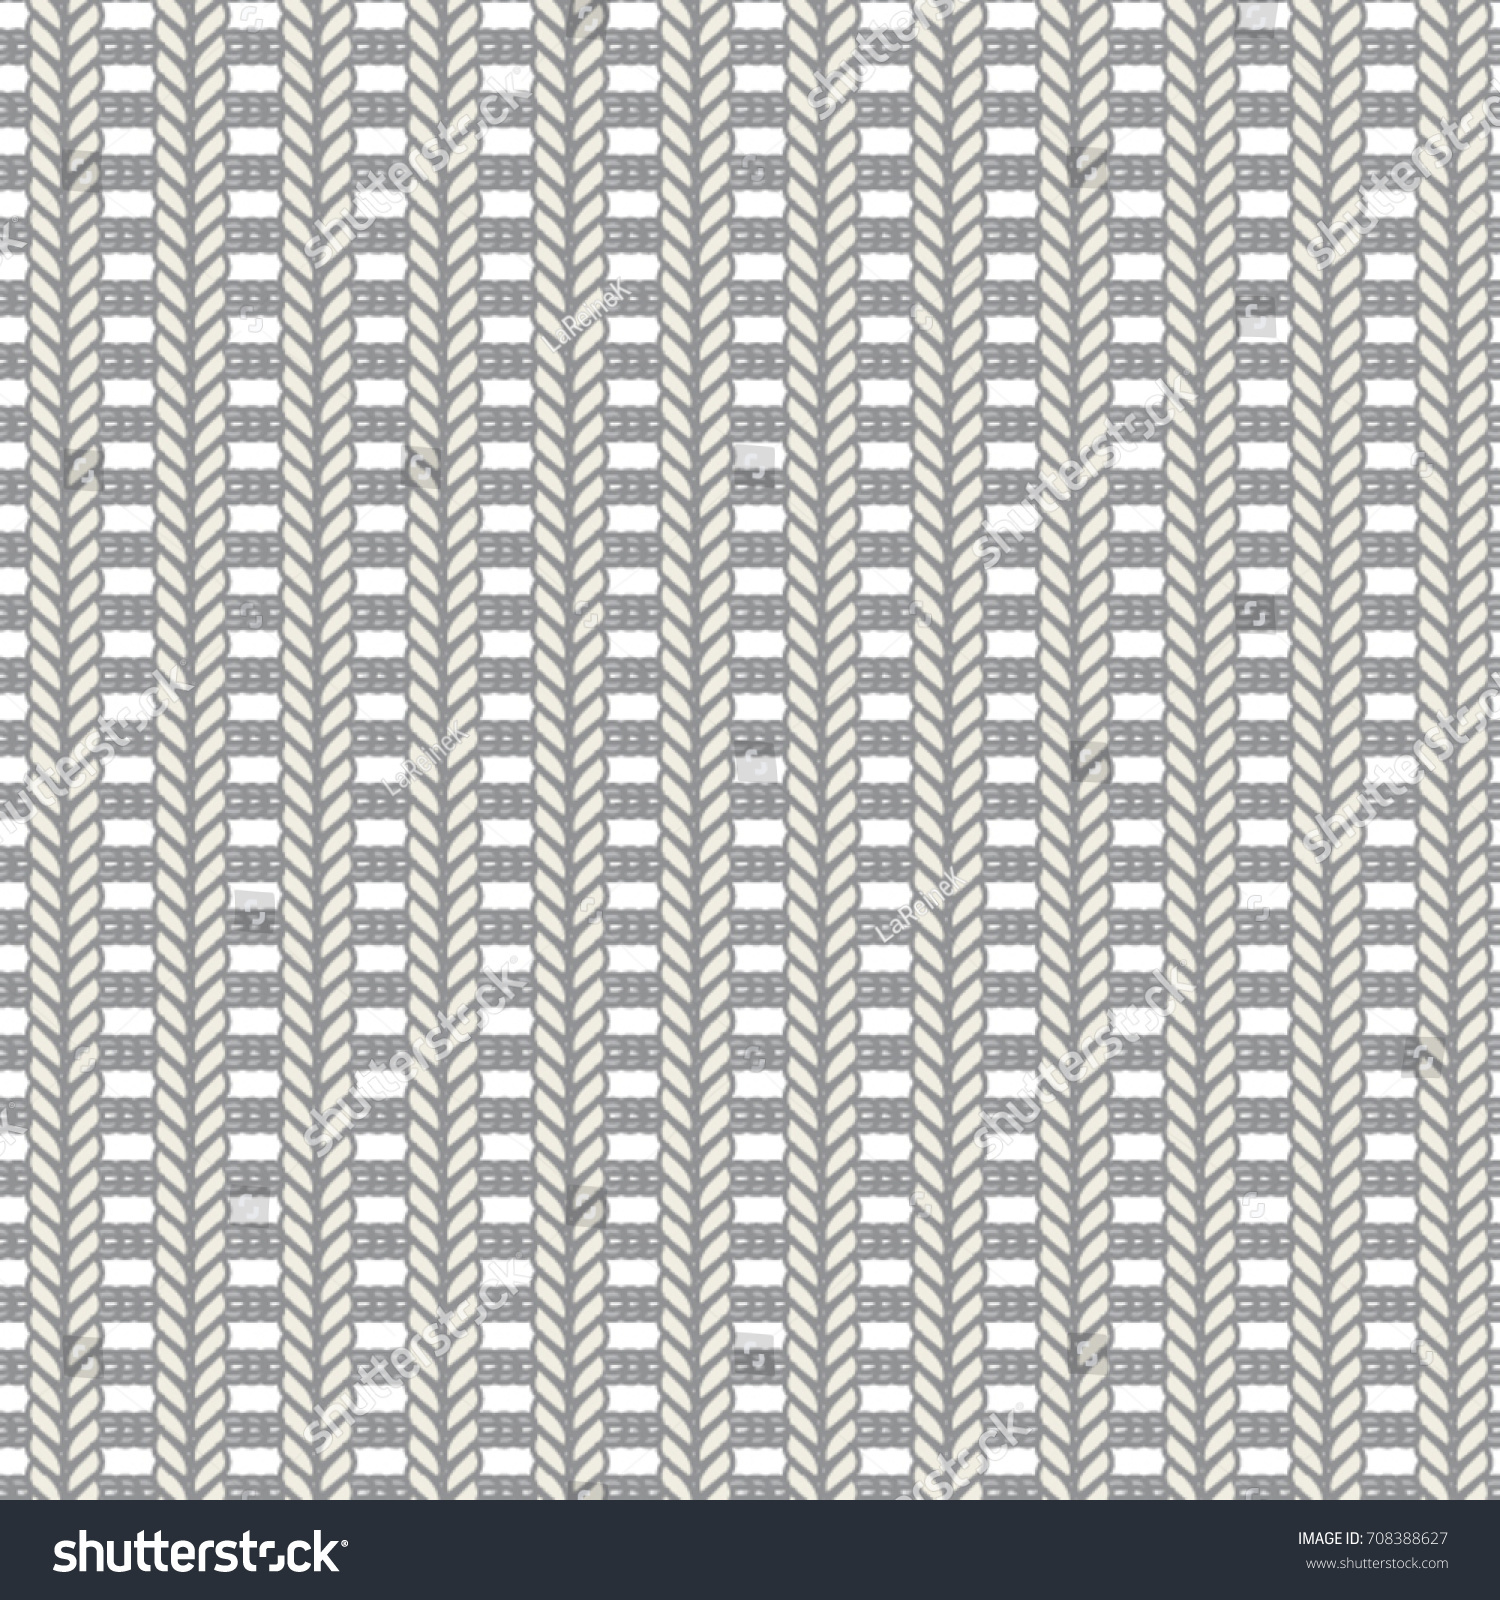 Ladder Knit Stitch Seamless Vector Pattern Stock Vector Royalty